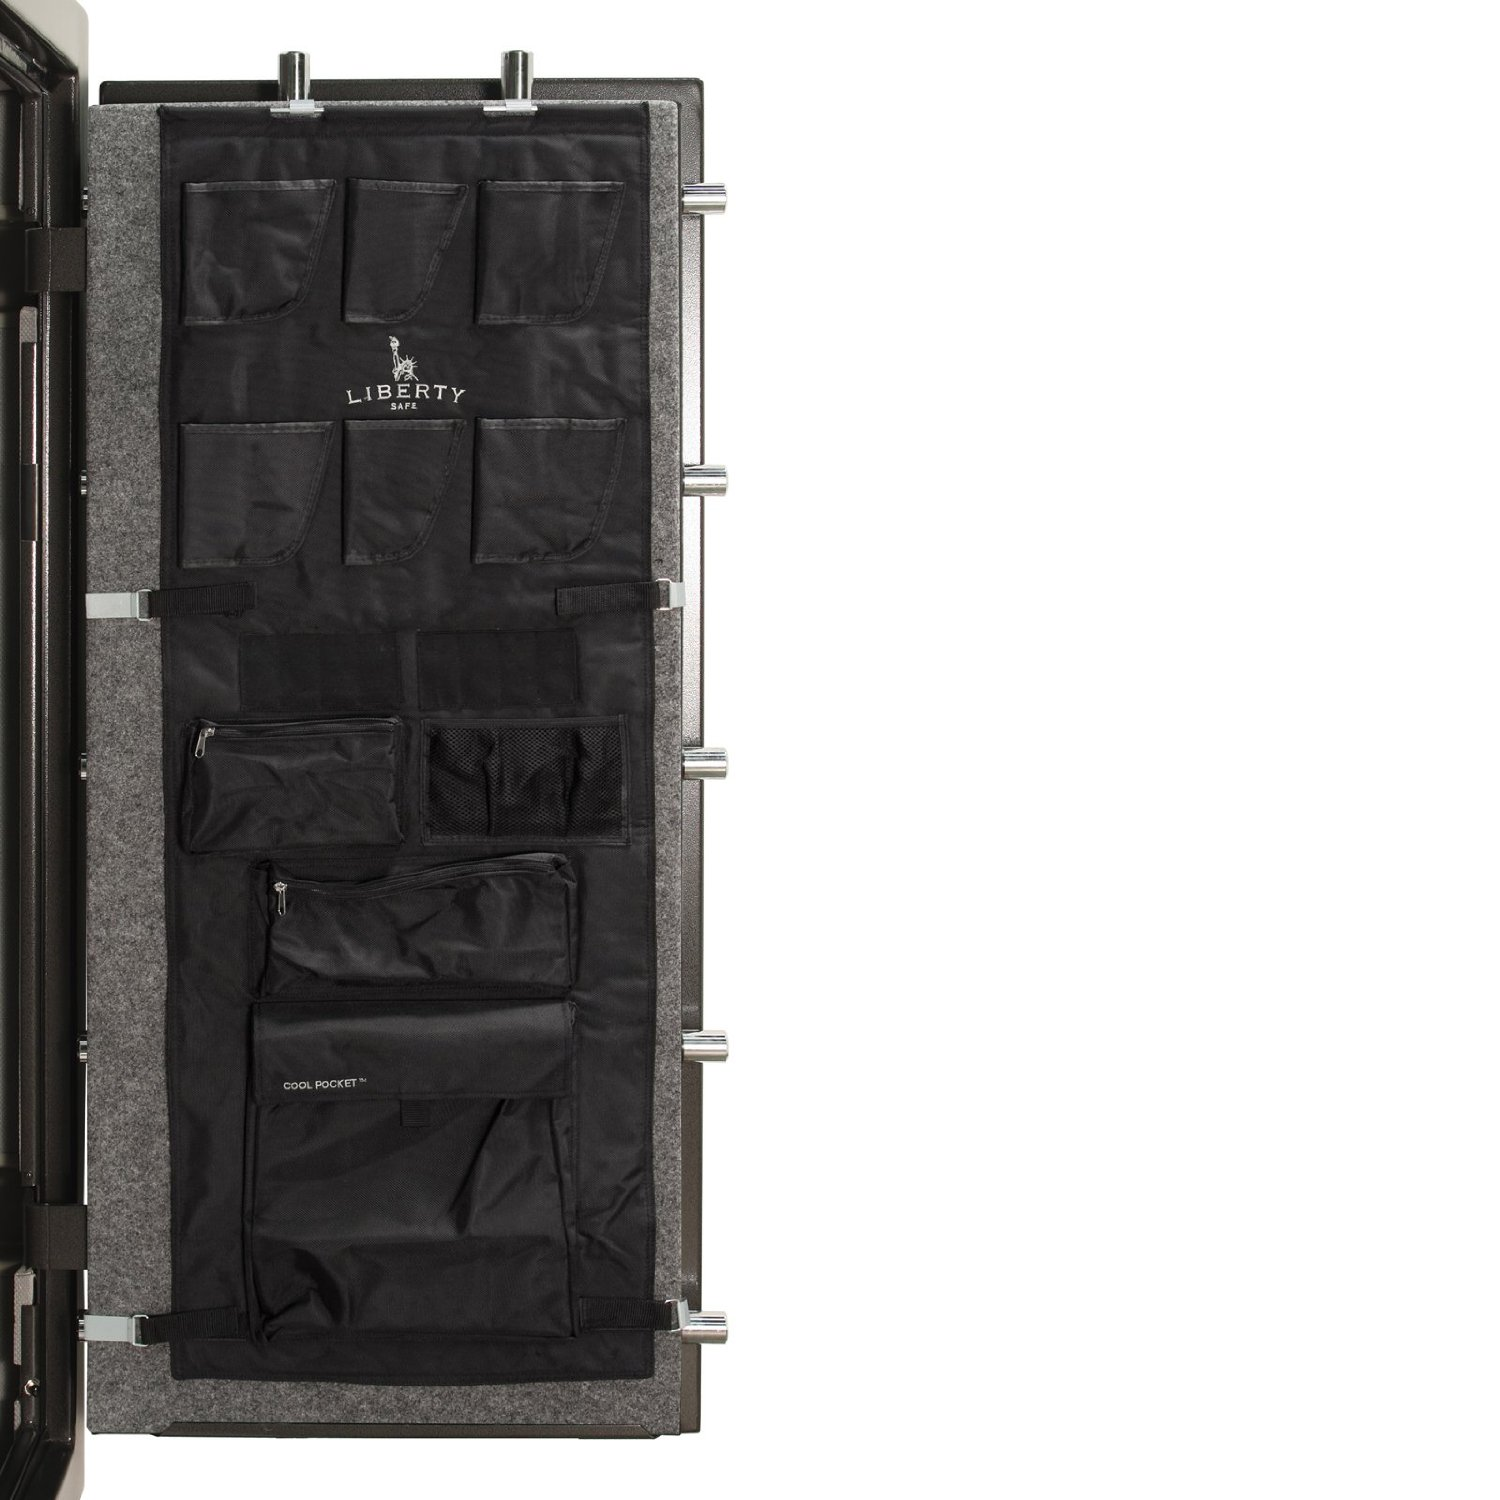 LIBERTY SAFE & SECURITY PROD 10585 24 Gun Safe Door Panel is pictured here